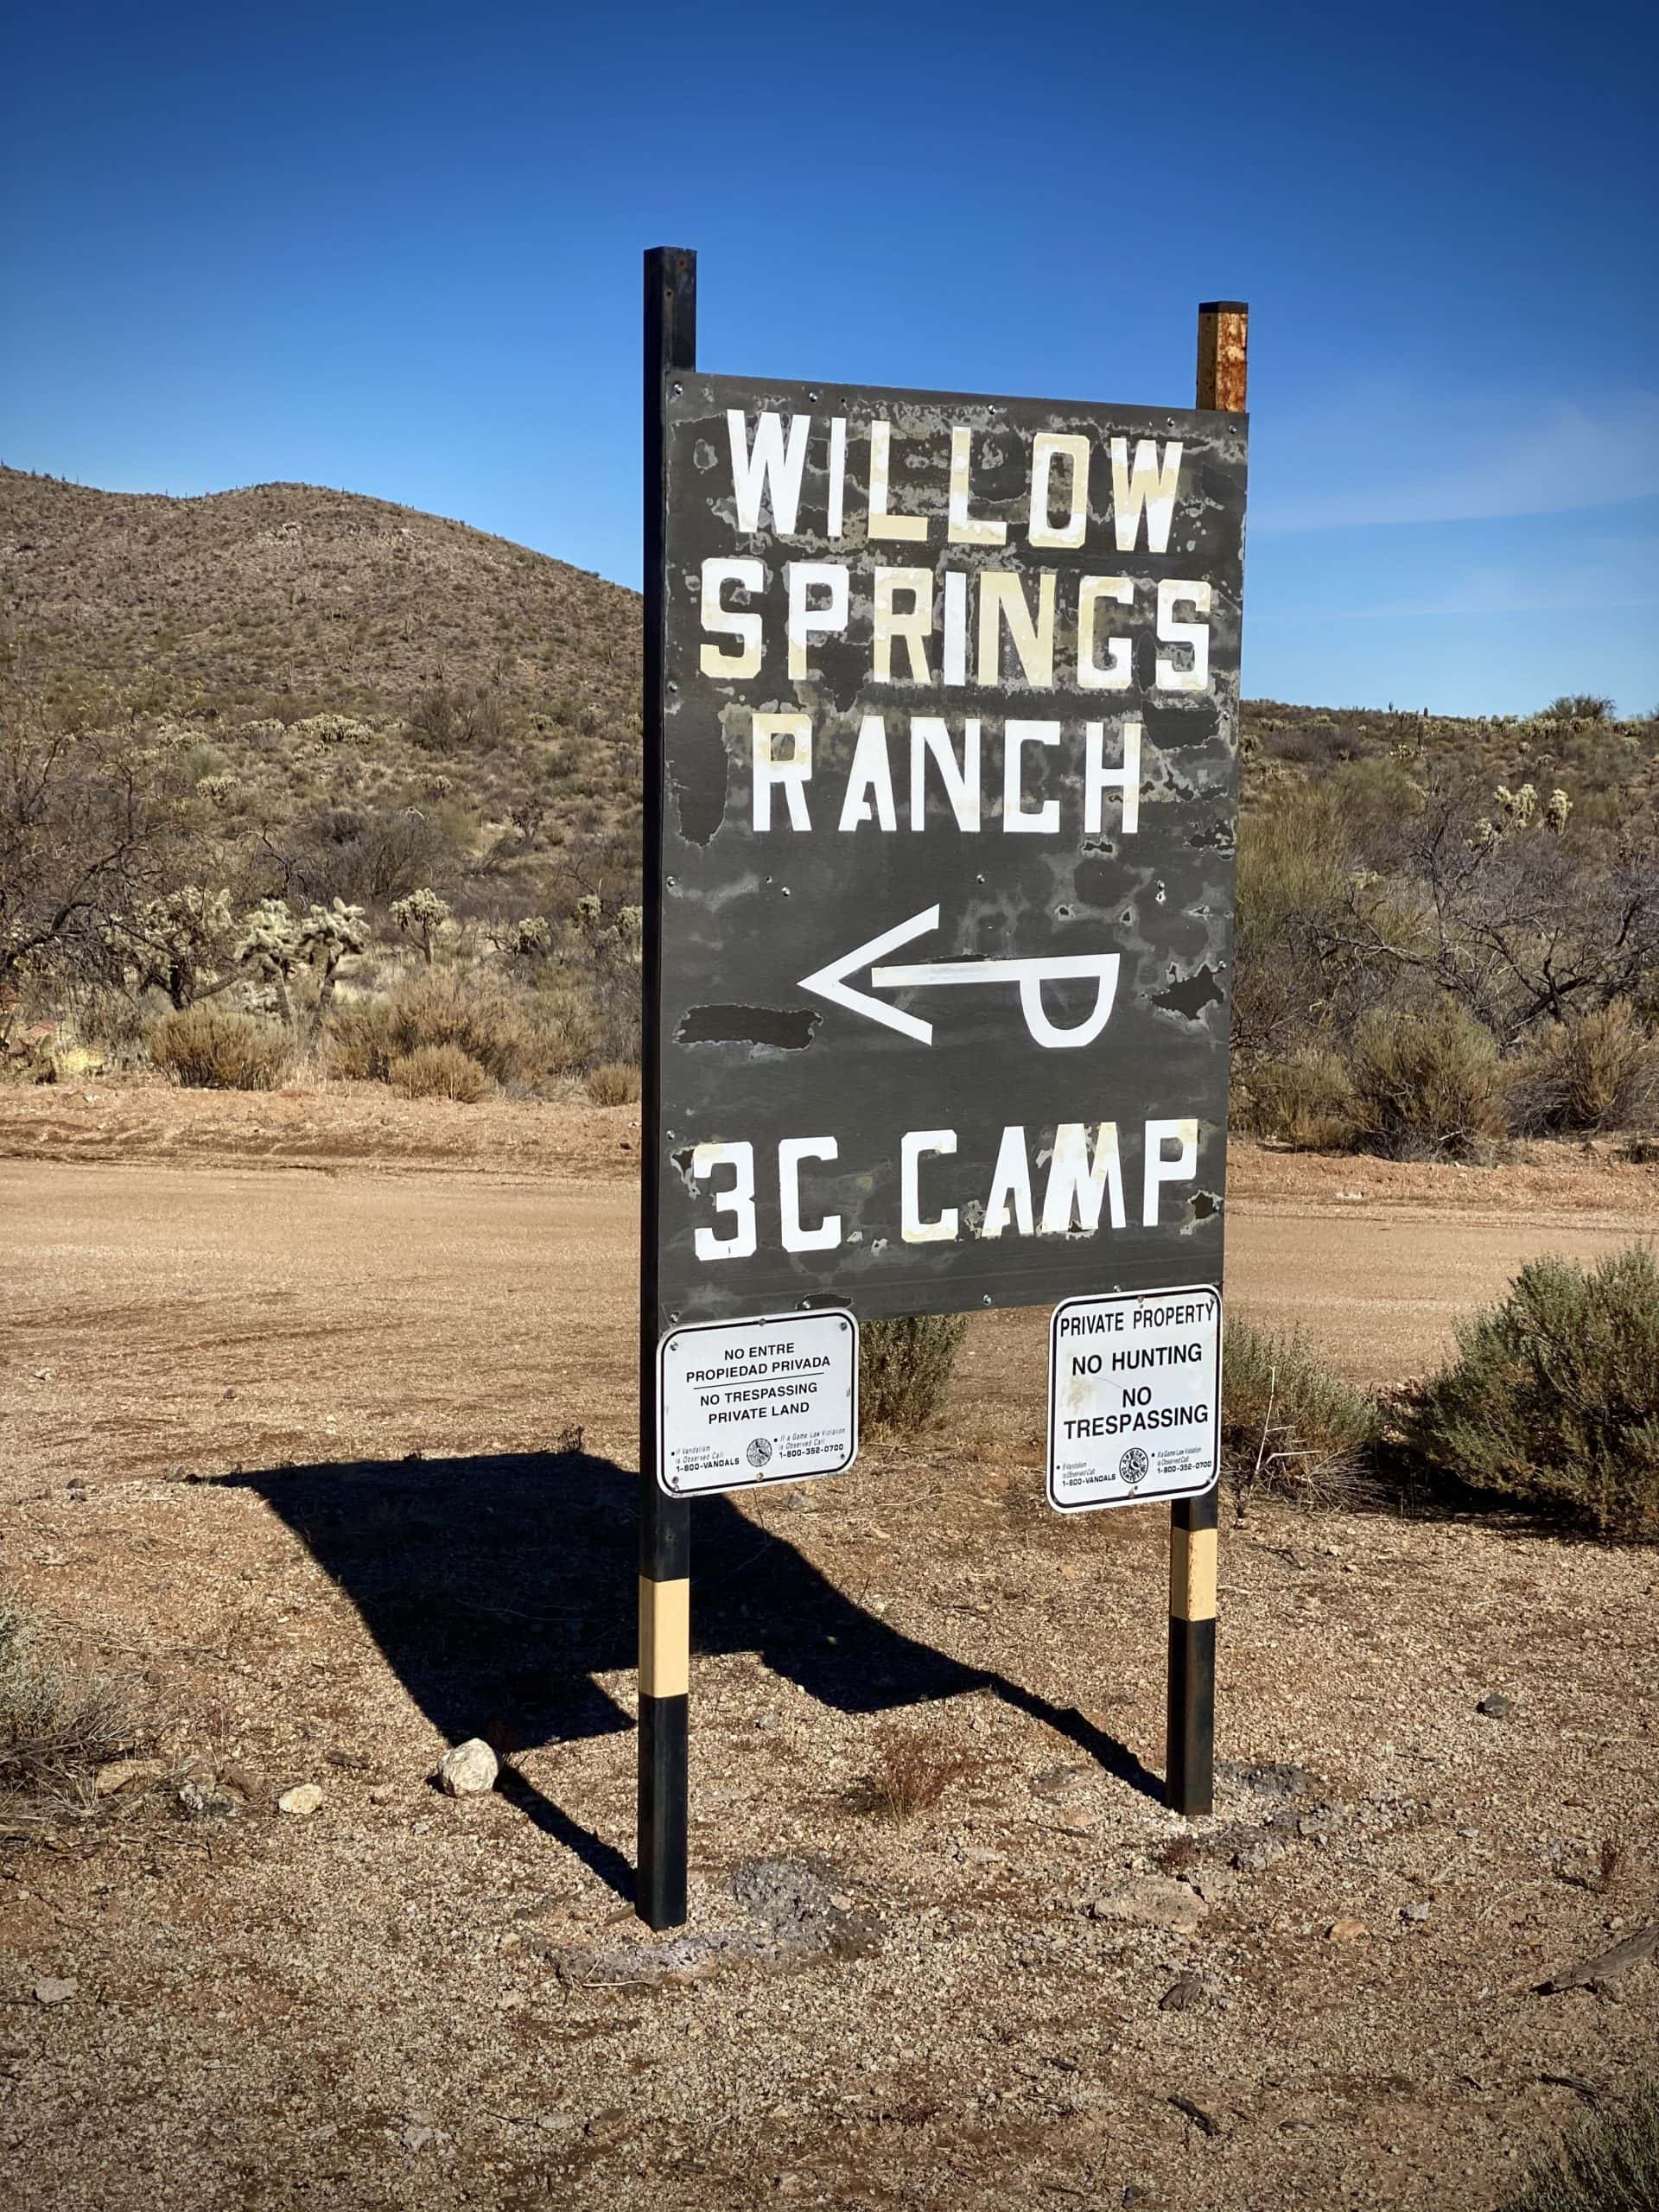 Sign for Willow Springs Ranch near Florence, Arizona.